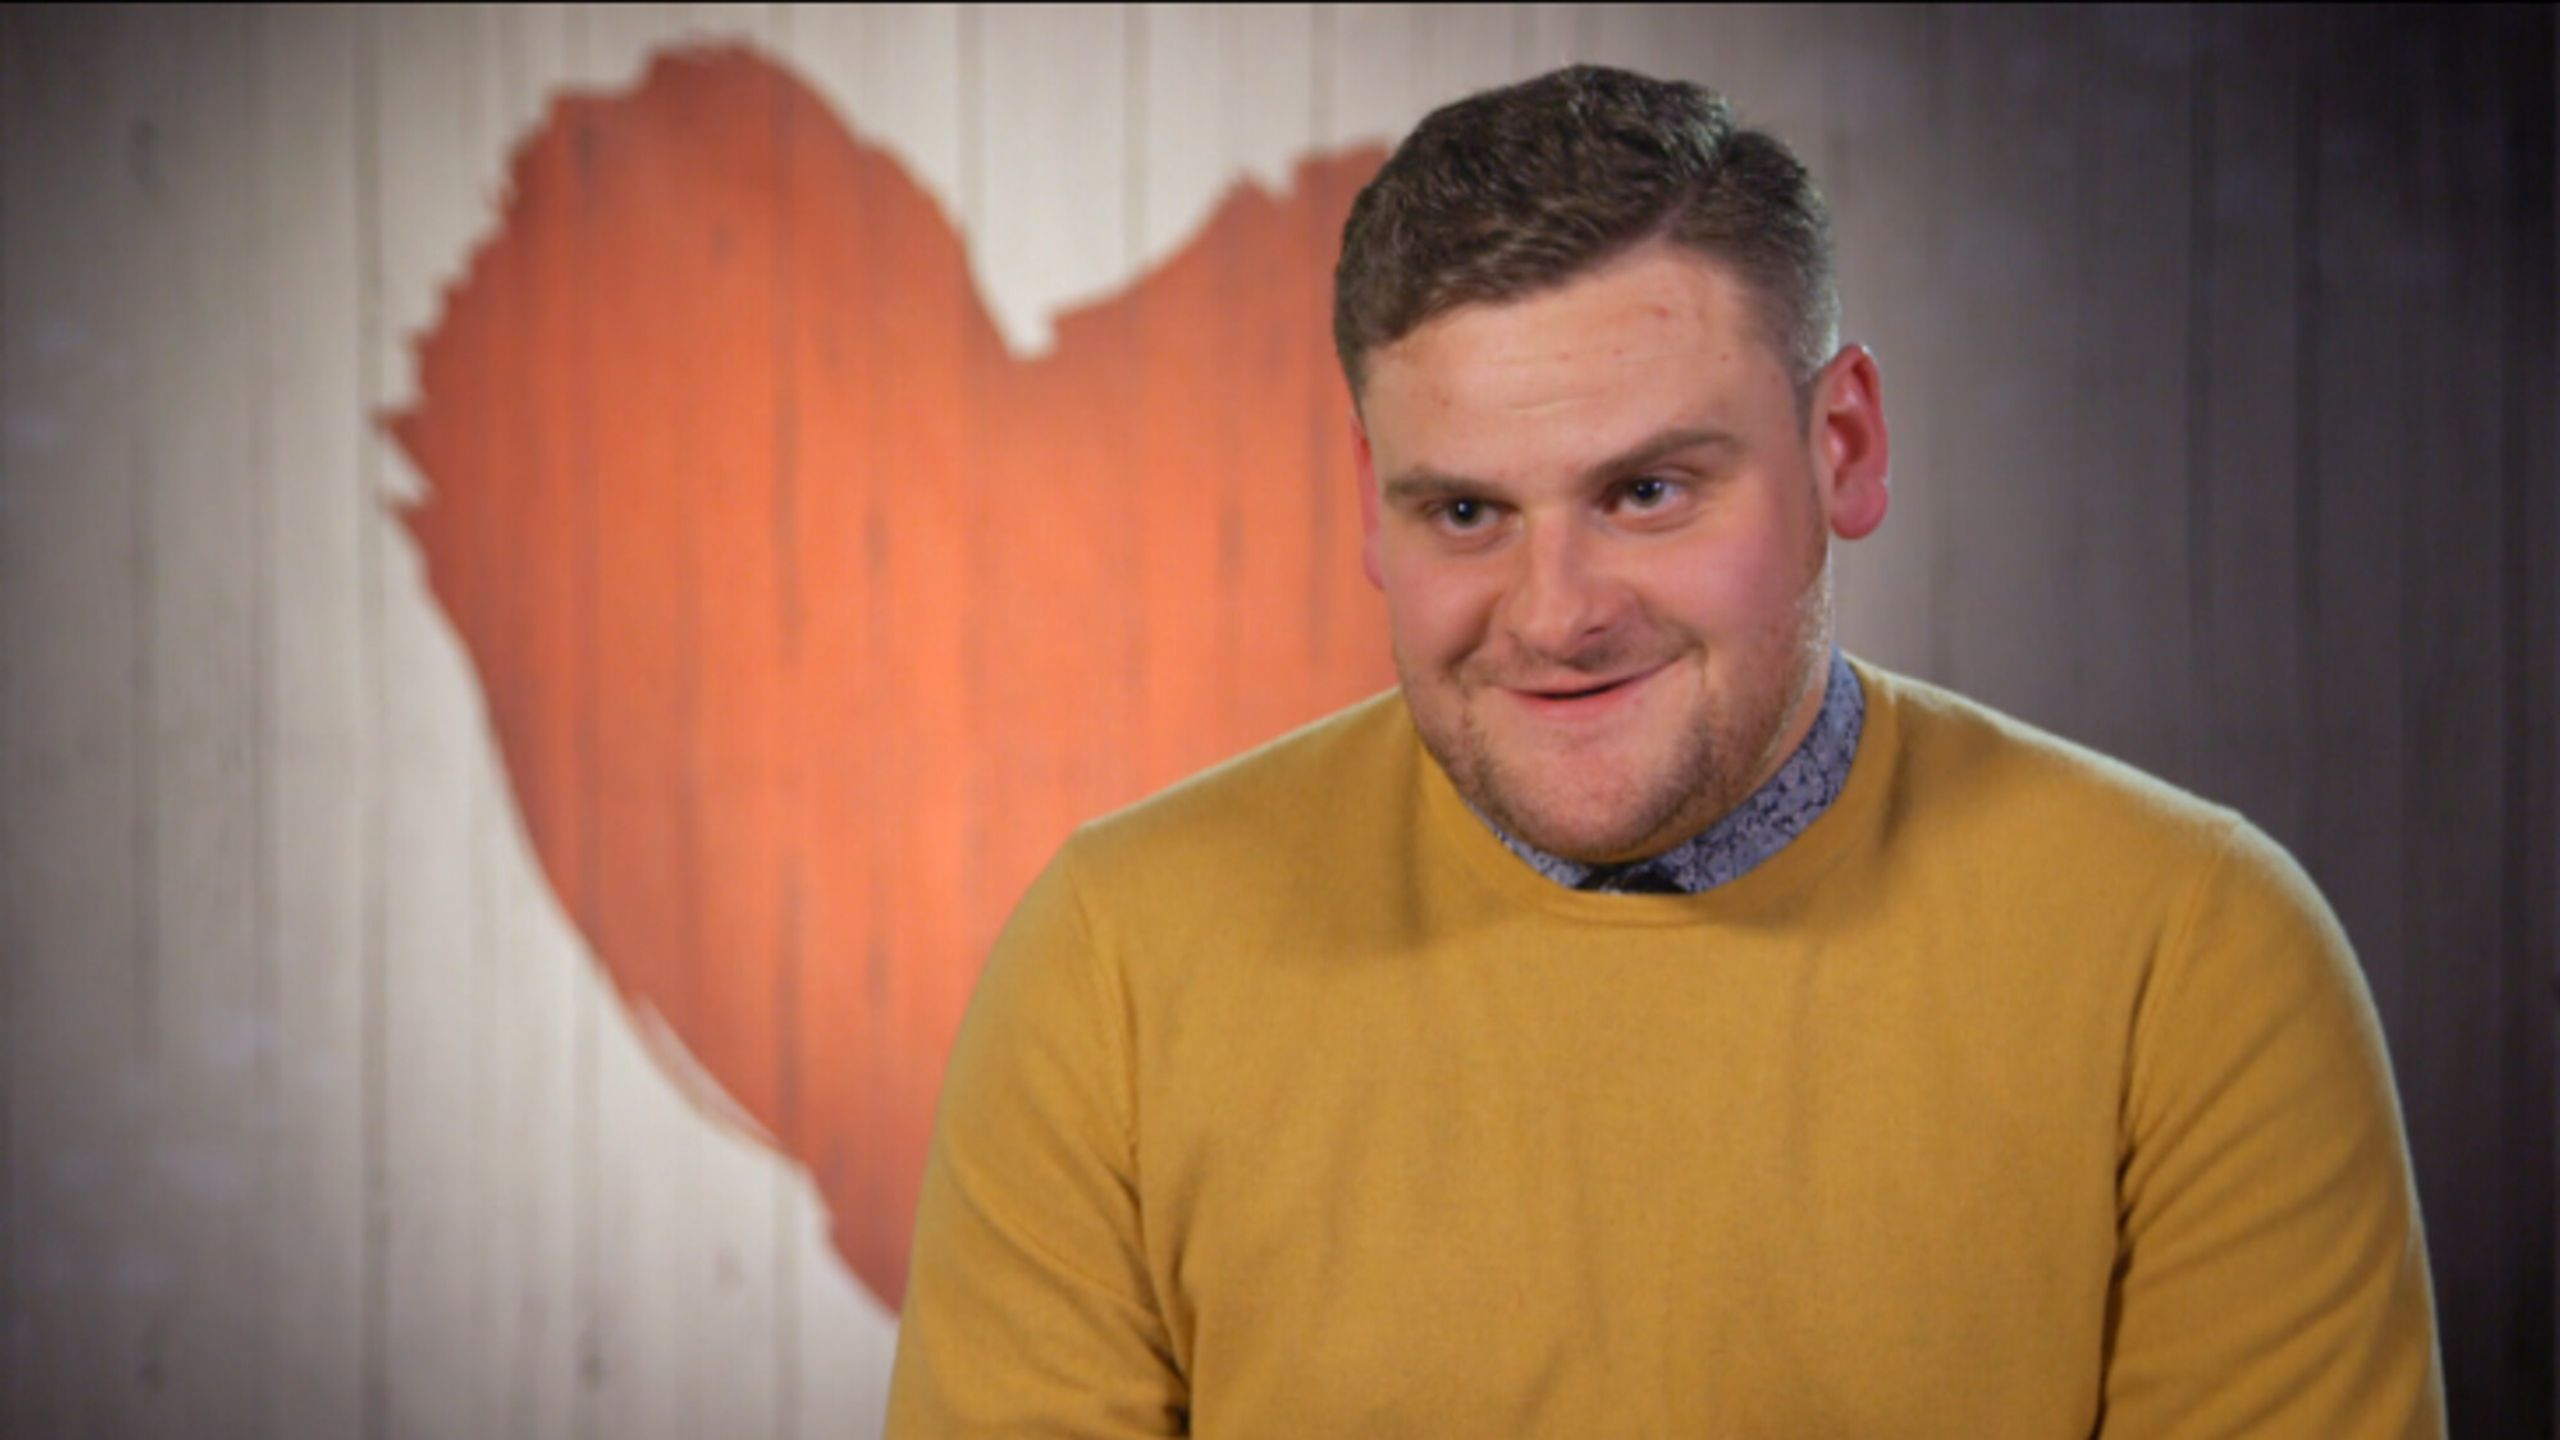 First Dates - Seizoen 18 Afl. 12 - Aflevering 12